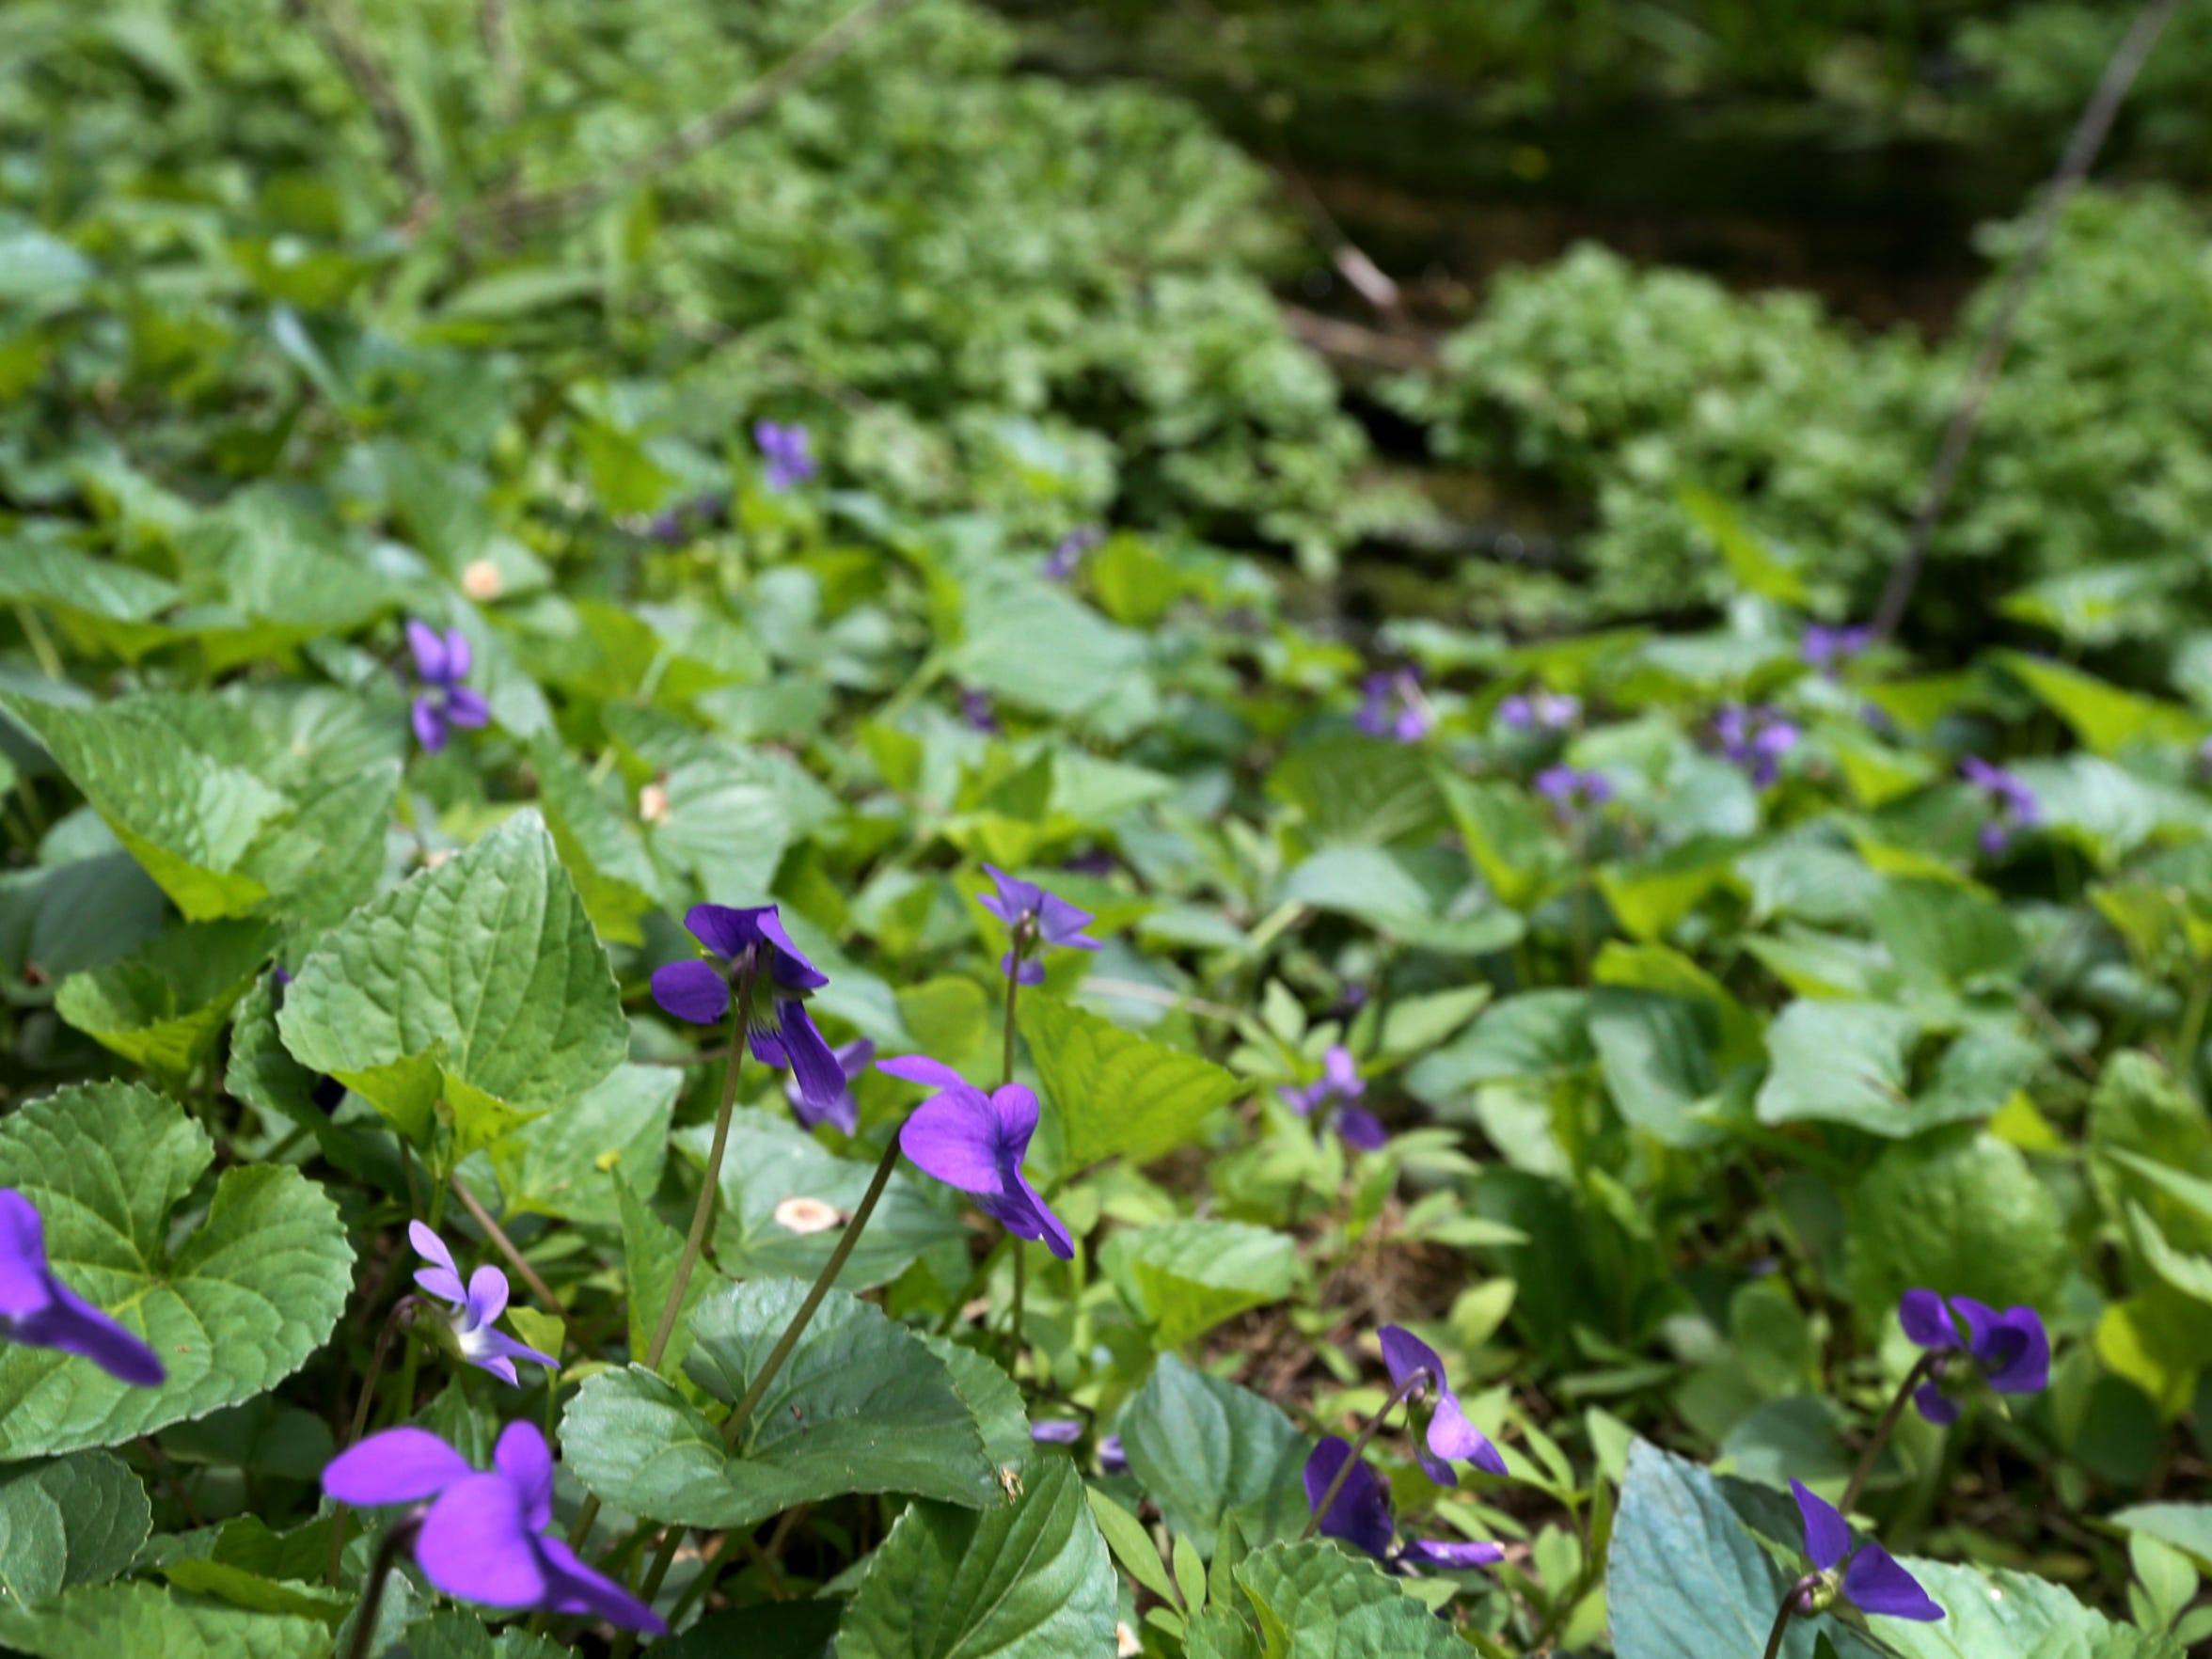 Wild violets in bloom can be seen during a walk around the wetlands of Oaklands Park, on Wednesday, April 13, 2016.